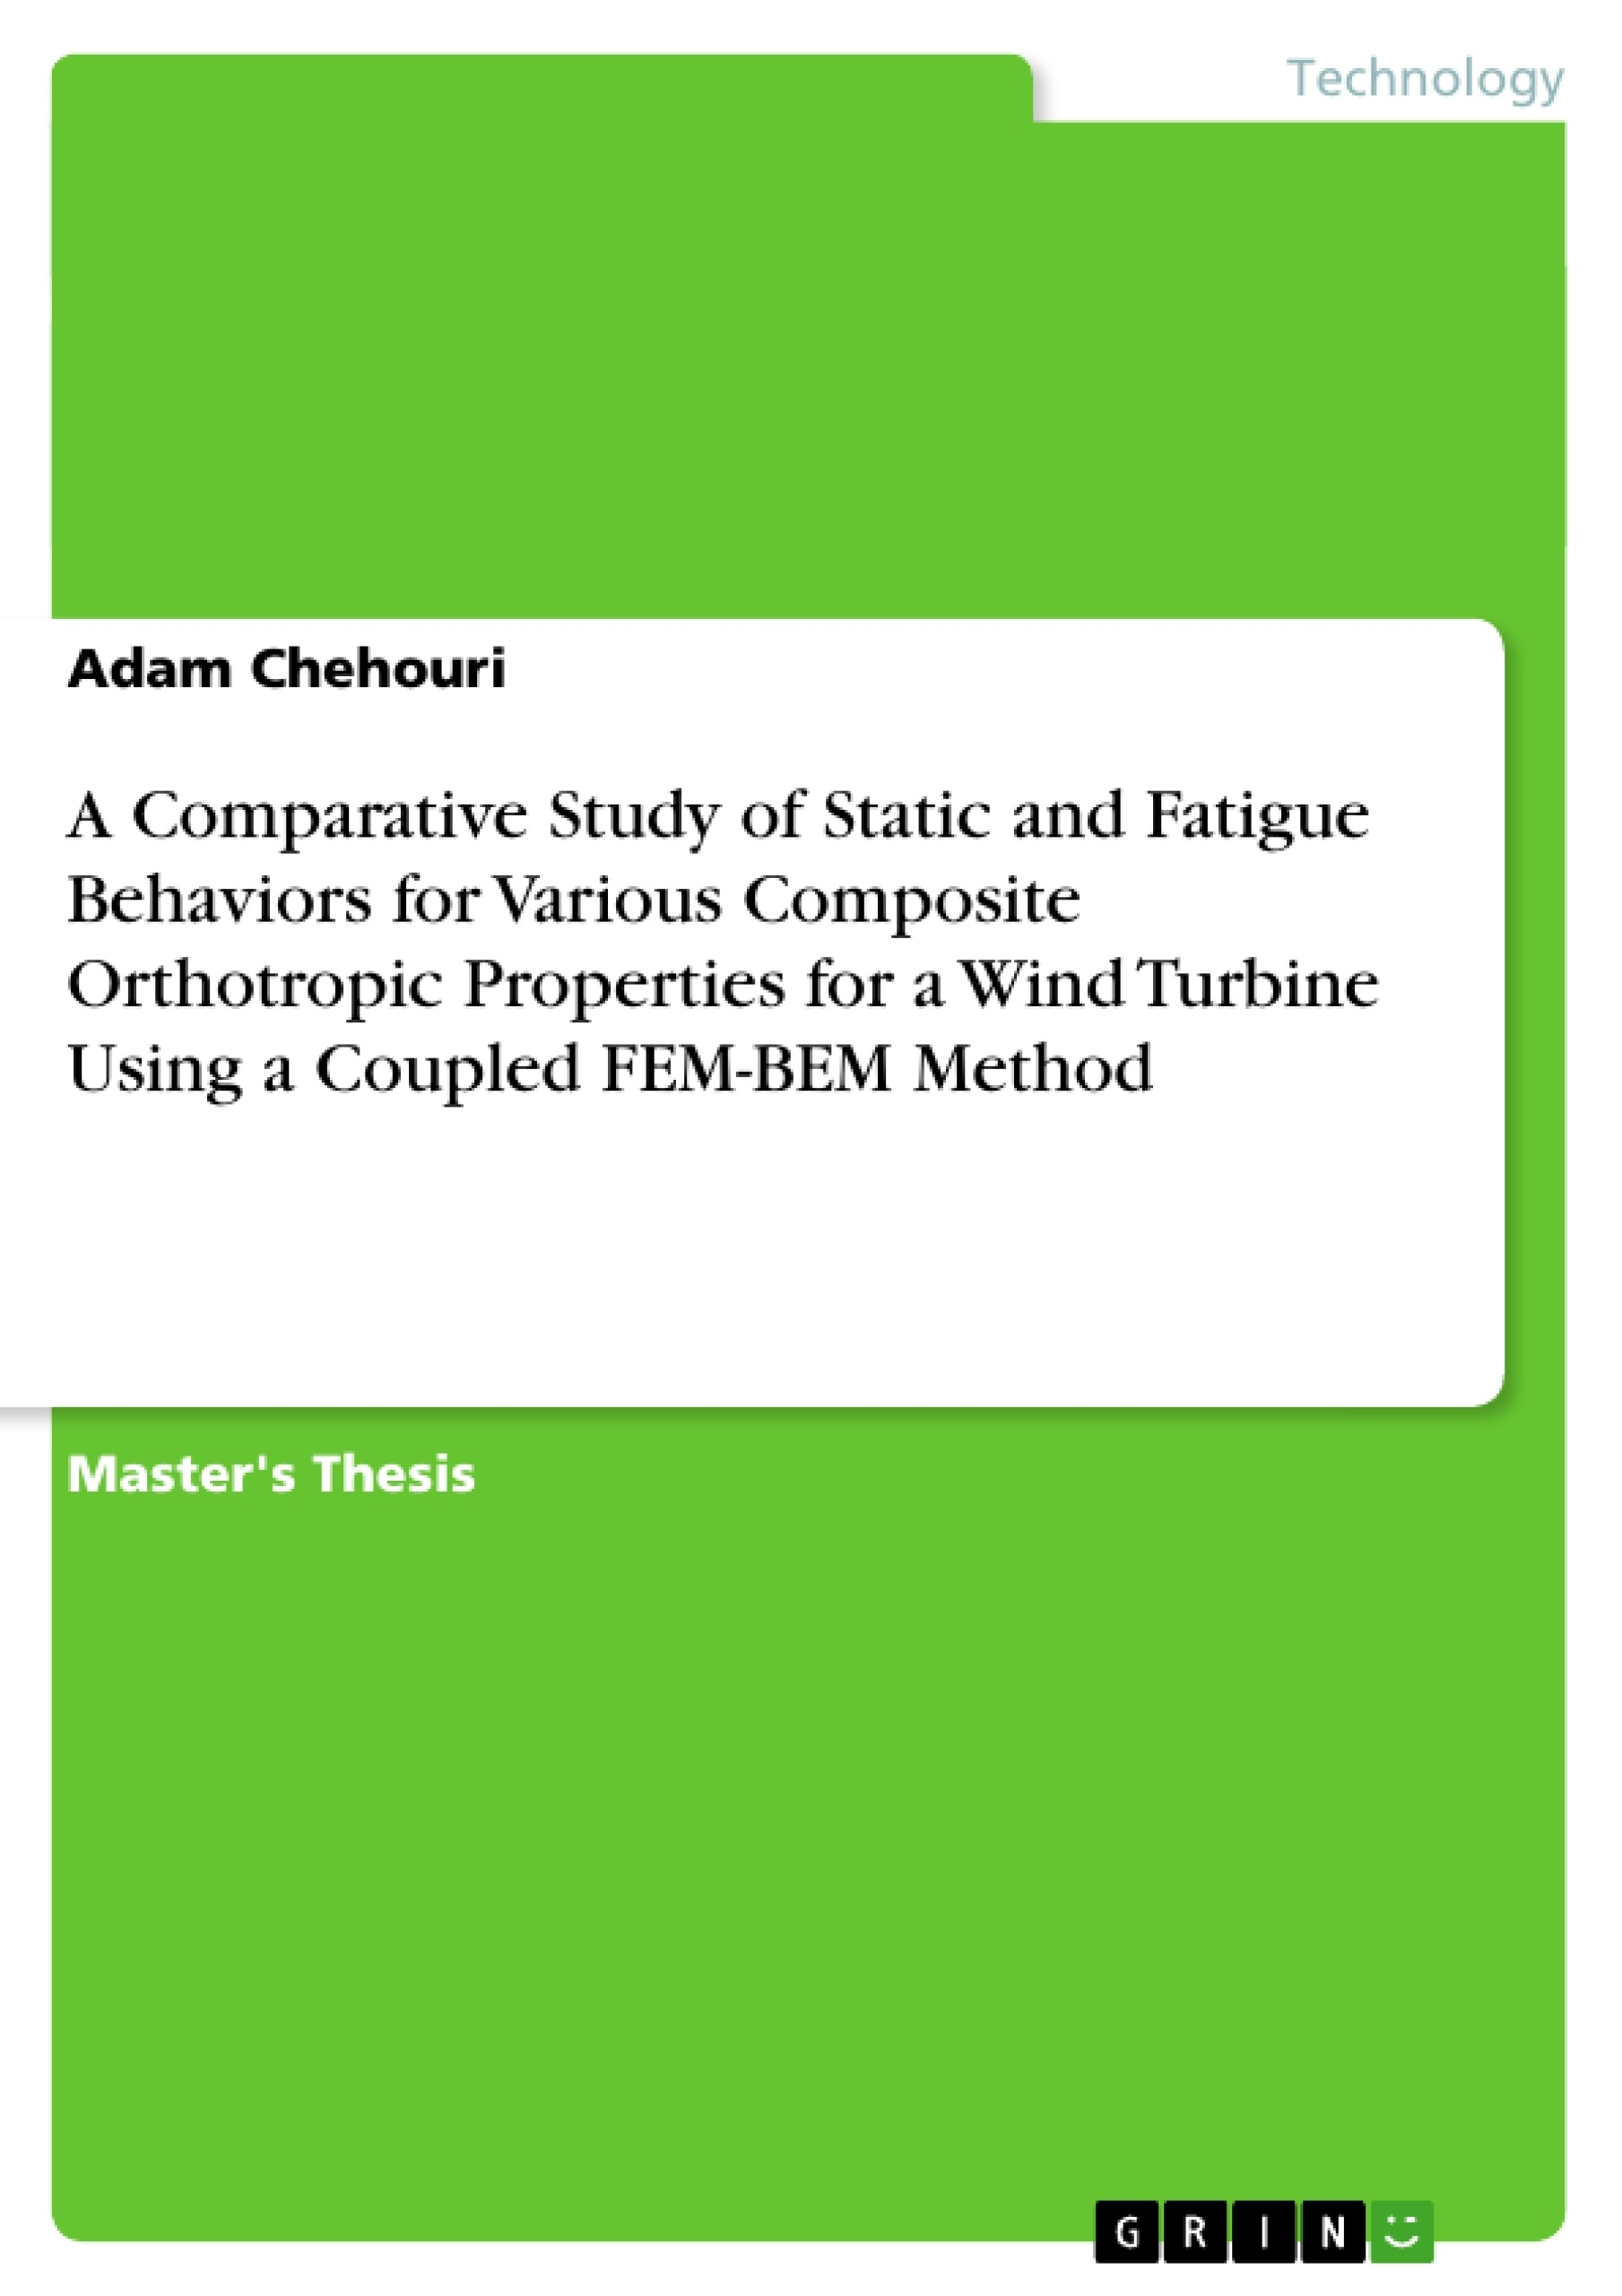 Title: A Comparative Study of Static and Fatigue Behaviors for Various Composite Orthotropic Properties for a Wind Turbine Using a Coupled FEM-BEM Method